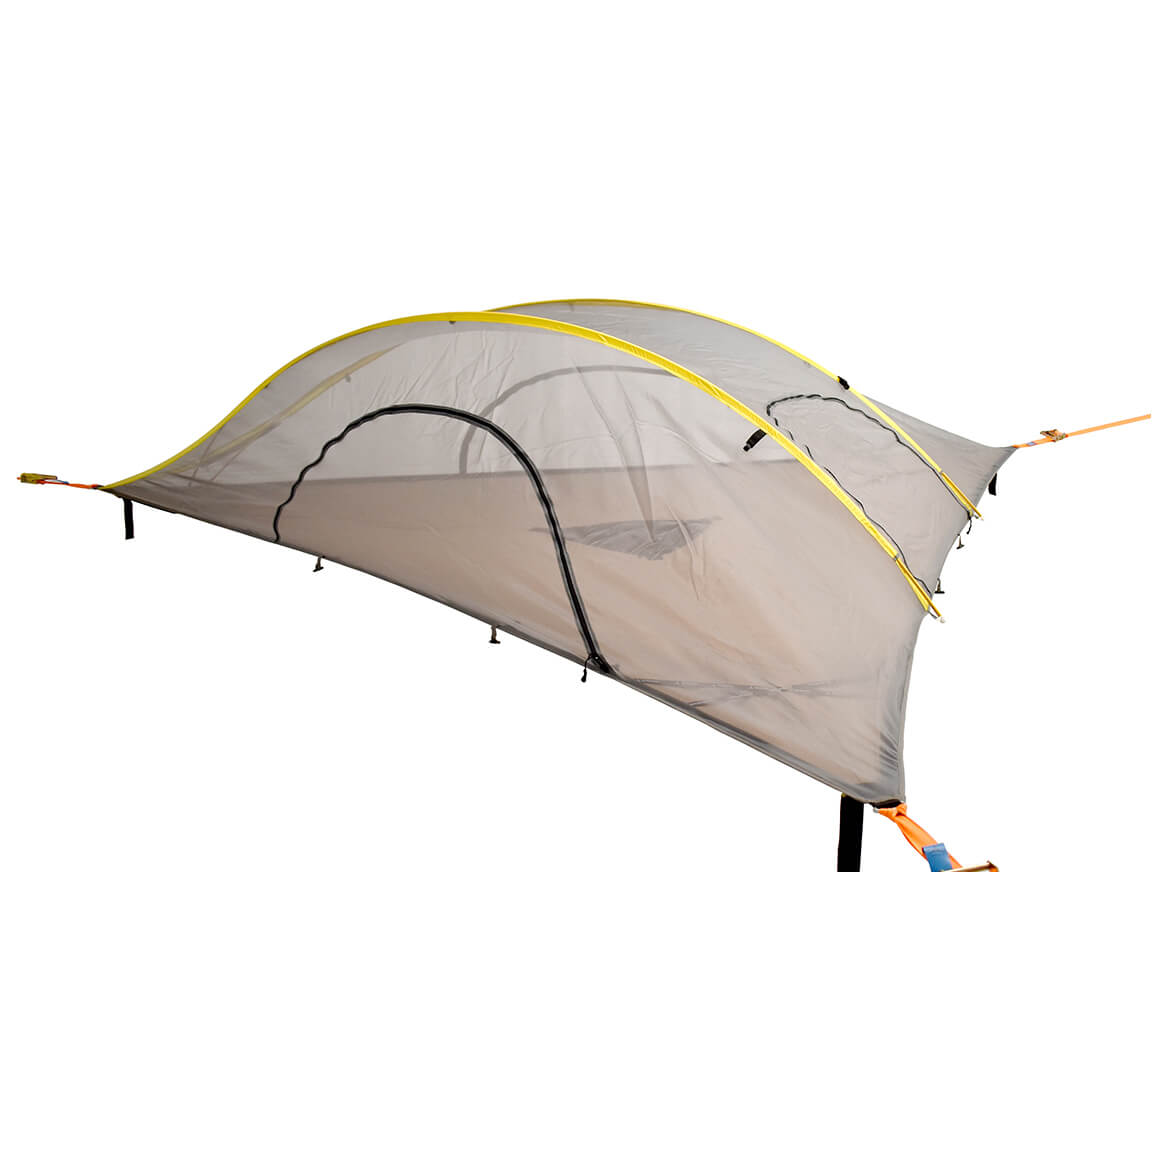 Tentsile - Safari Stingray - 3 man tent - Beige / Brown | 4,2 x 4,2 x 4,2 m